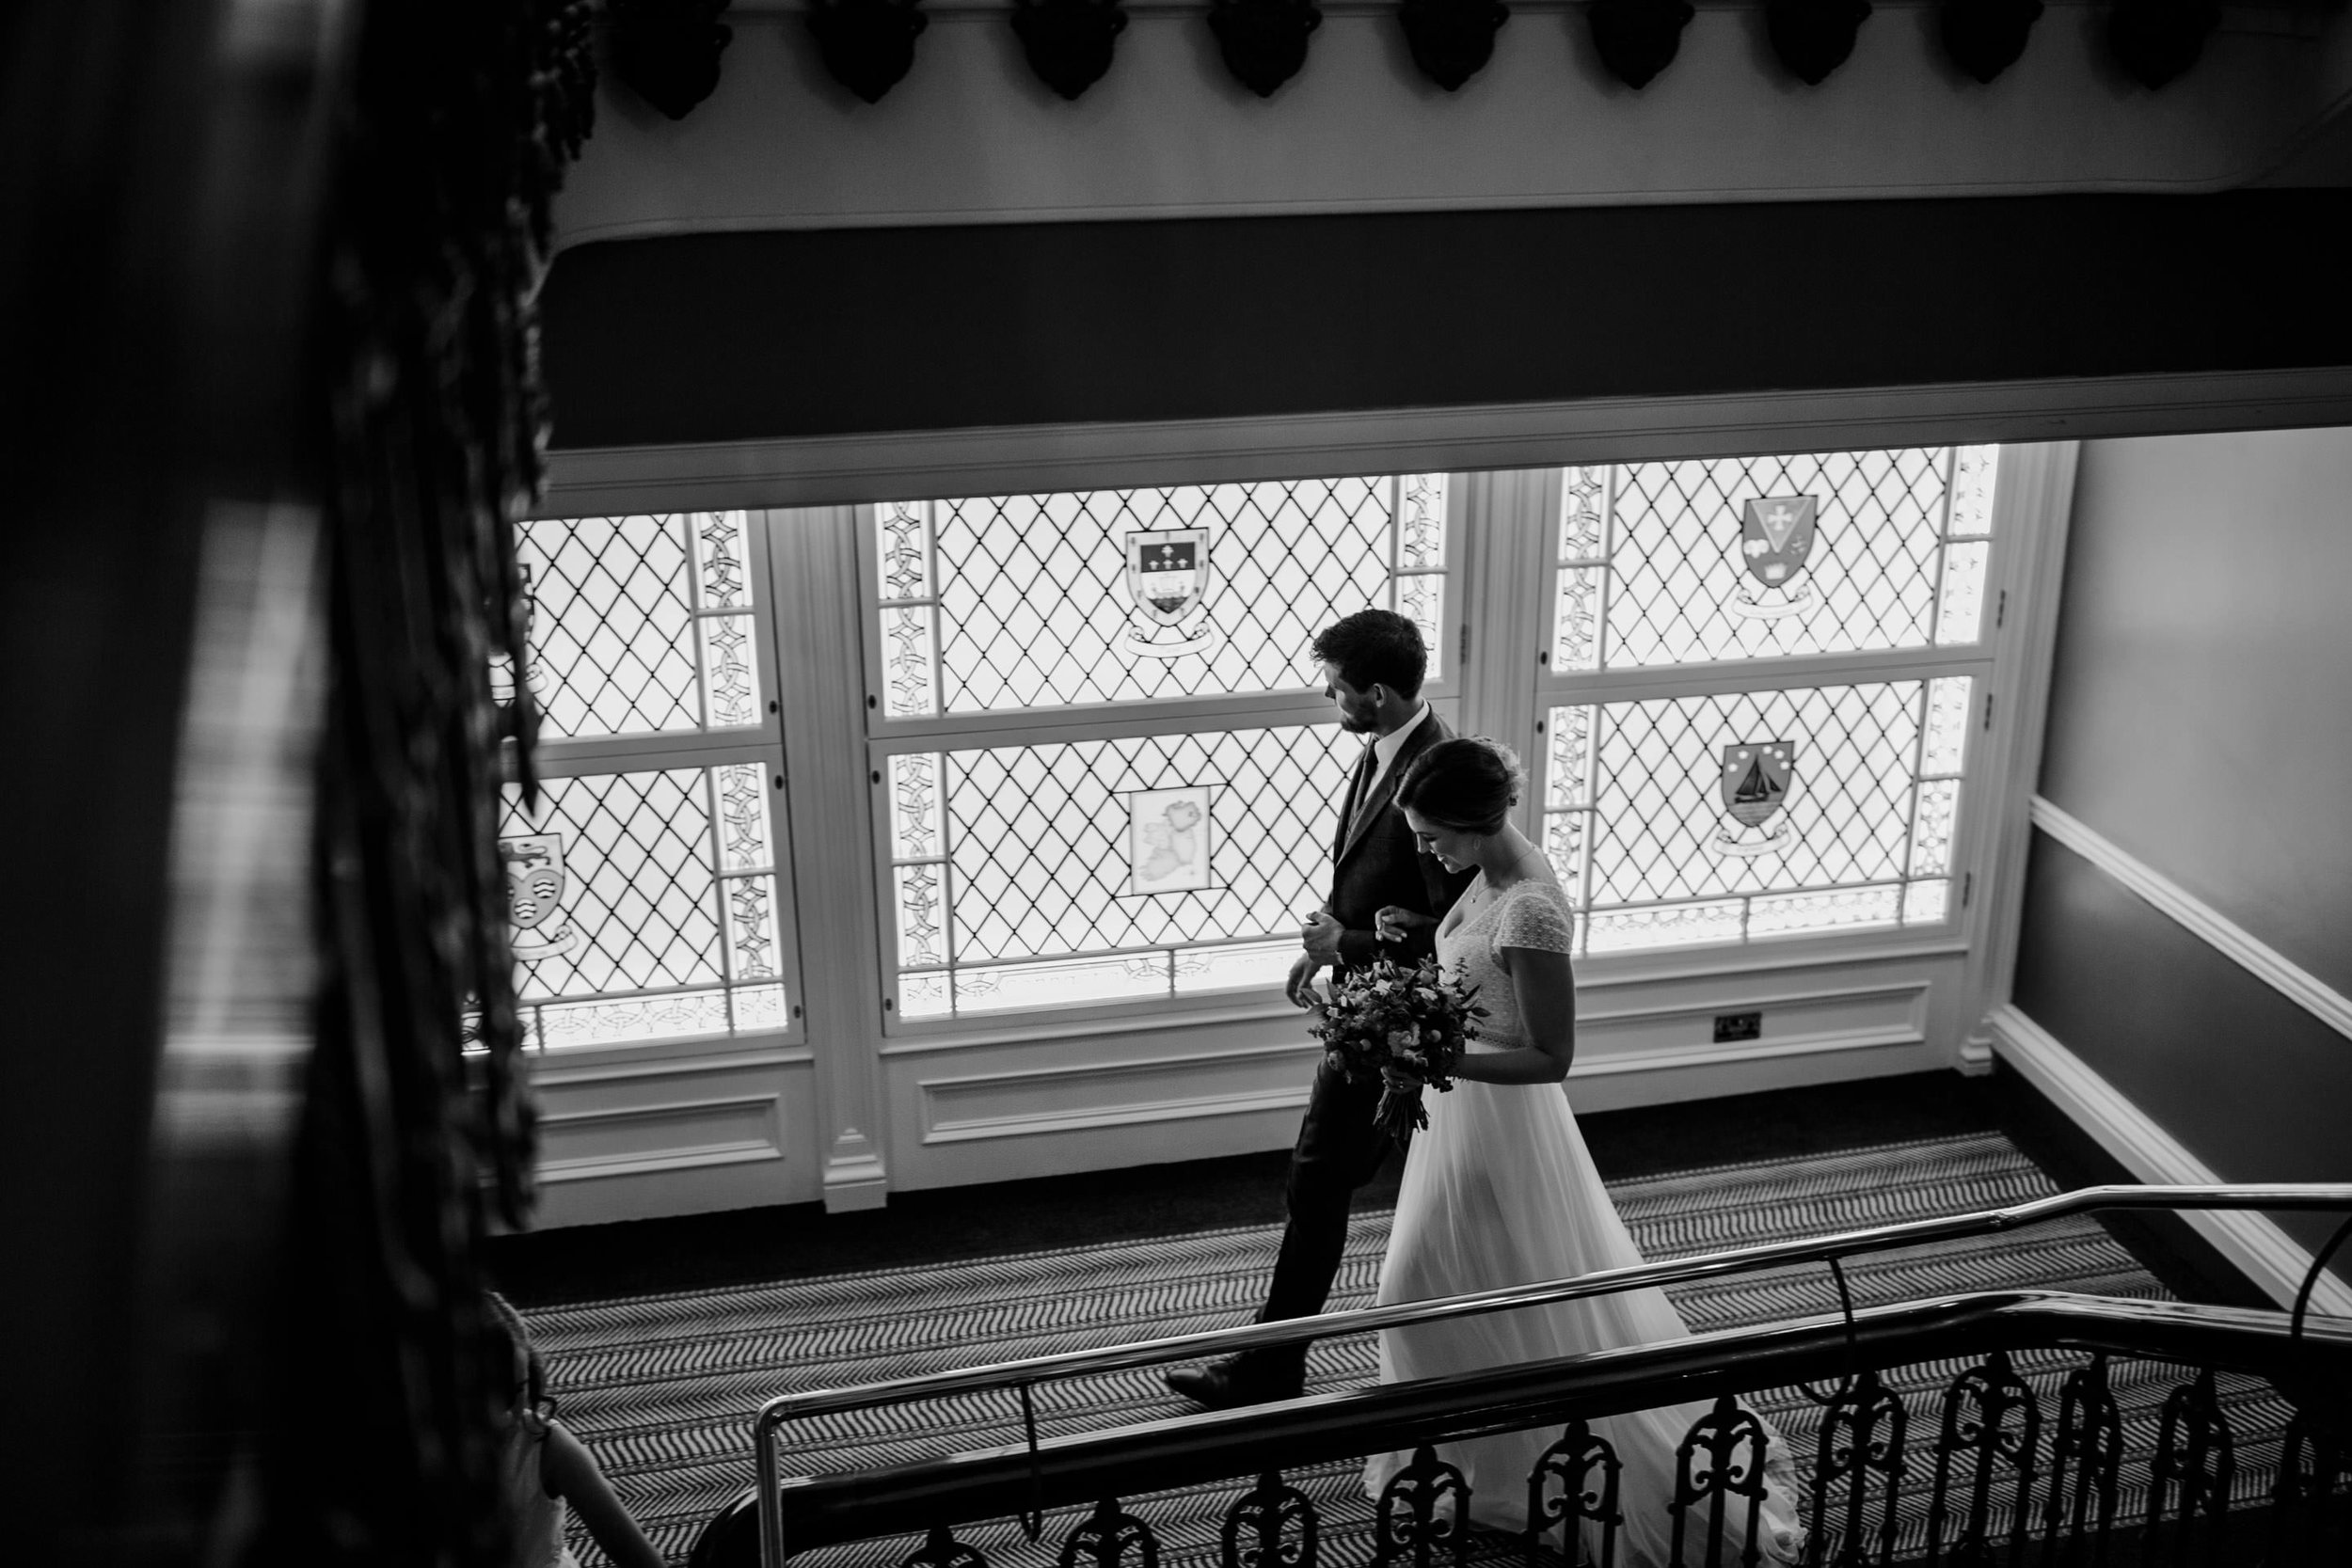 s&r_the_shelbourne_hotel_wedding_photographer_livia_figueiredo_5.jpg